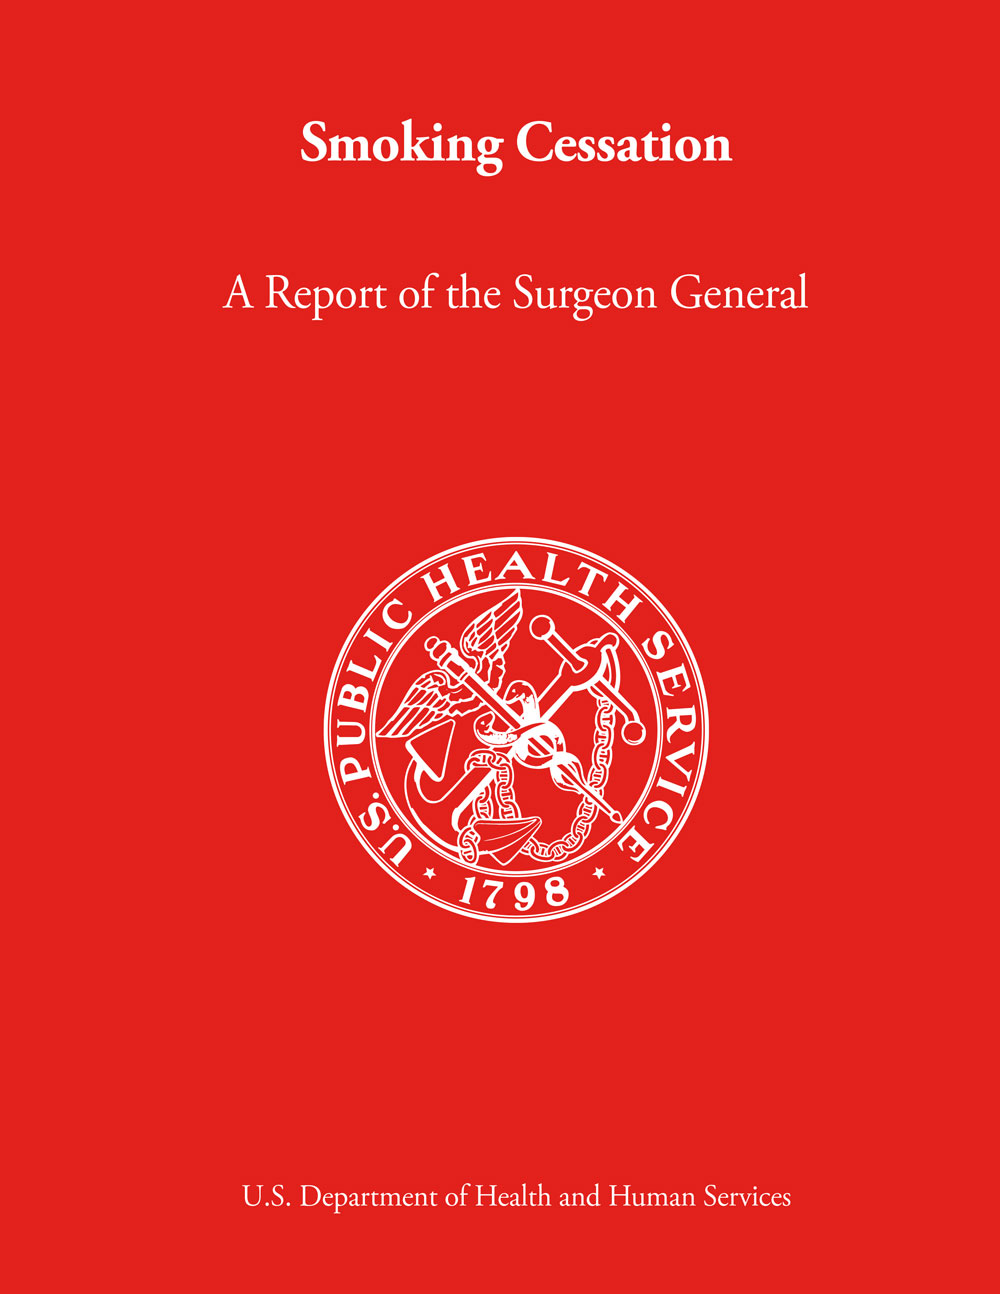 Smoking Cessation: A Report of the Surgeon General